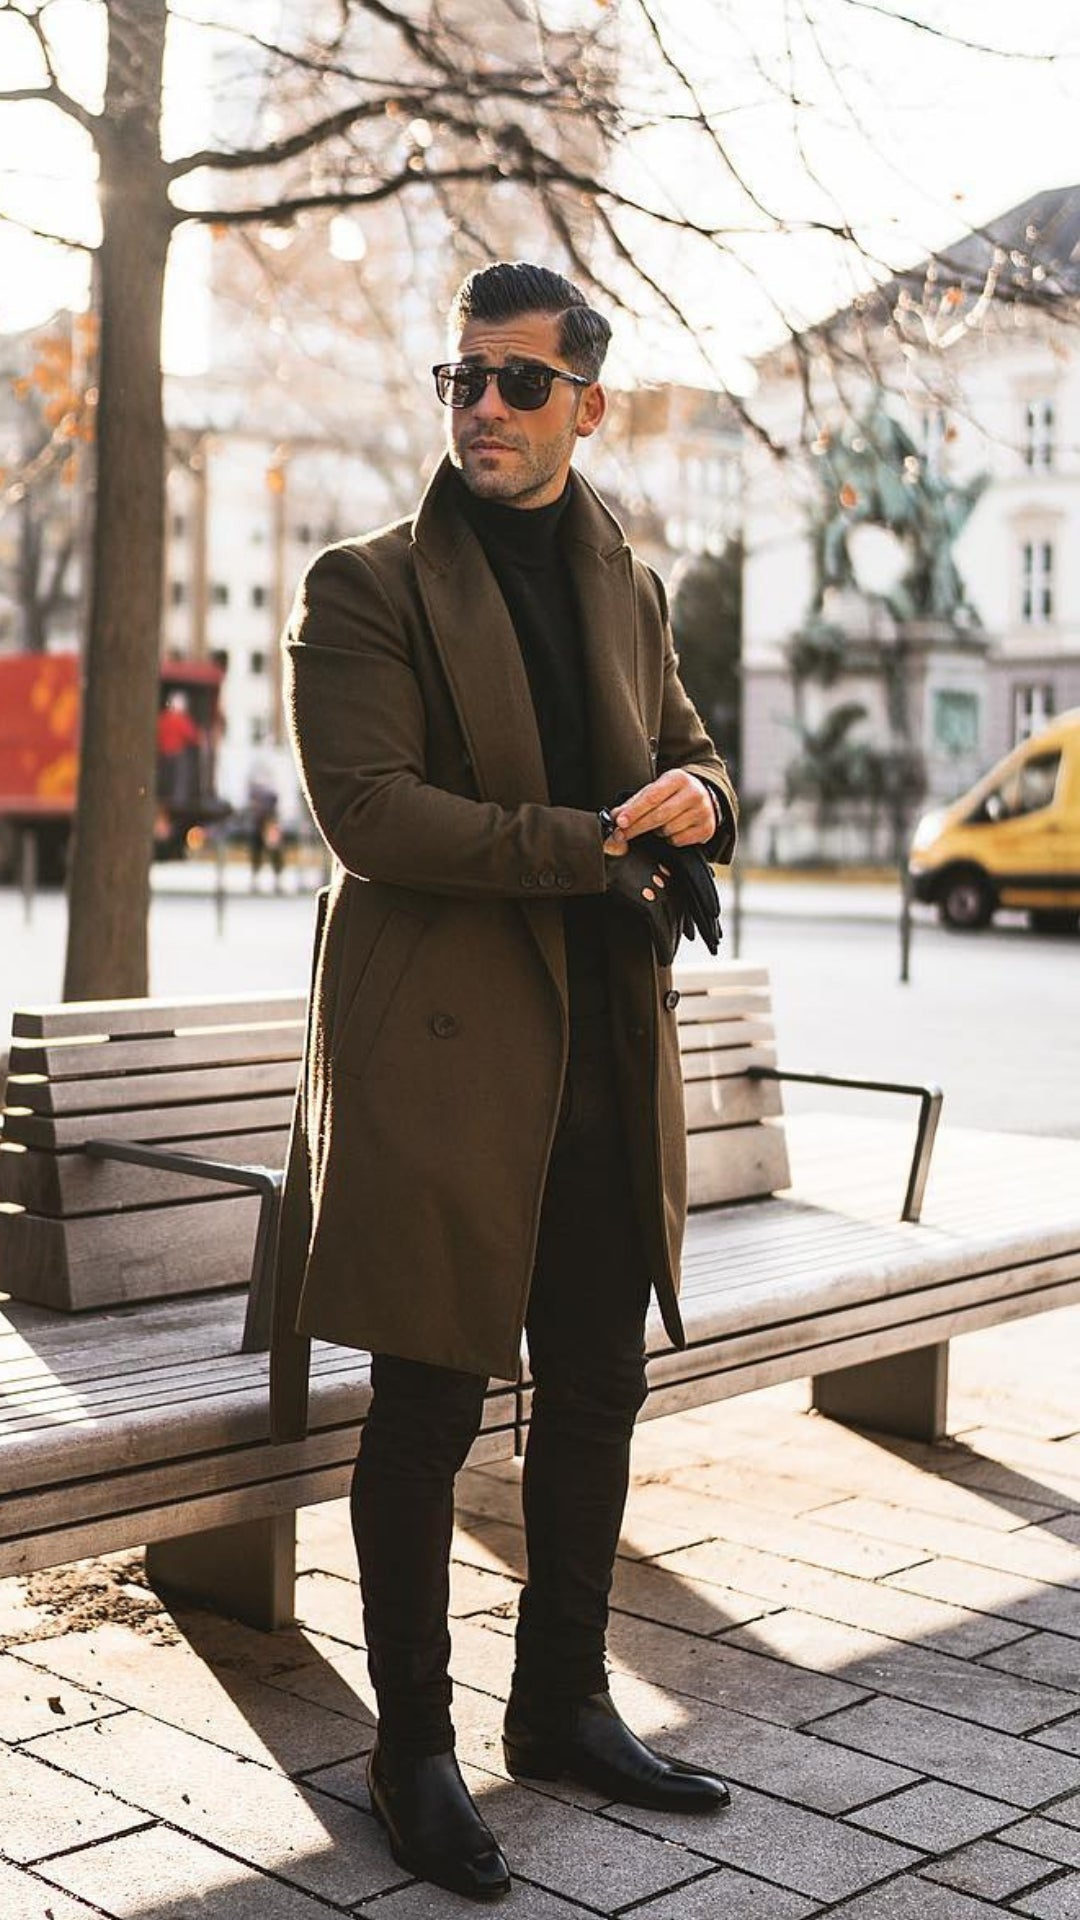 Want To Dress Sharp? Copy This Guy. #mensfashion #casual #outfits #streetstyle #kostawilliams